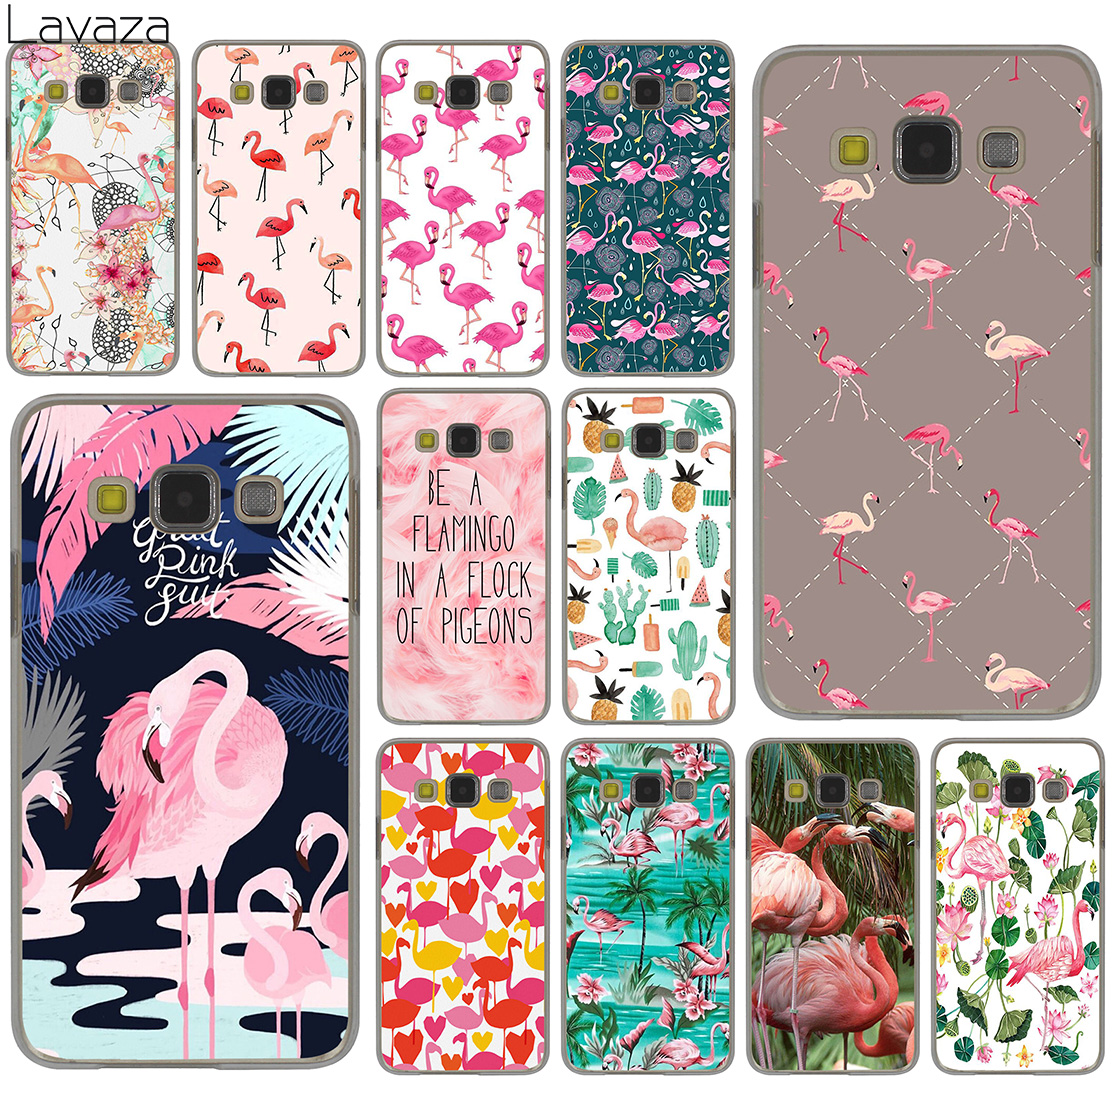 Pink Flamingo Themed Pool Party Hard Case Cover for Samsung Galaxy S8 Plus S3 S4 S5 & Mini S7 Edge S6 Edge Plus